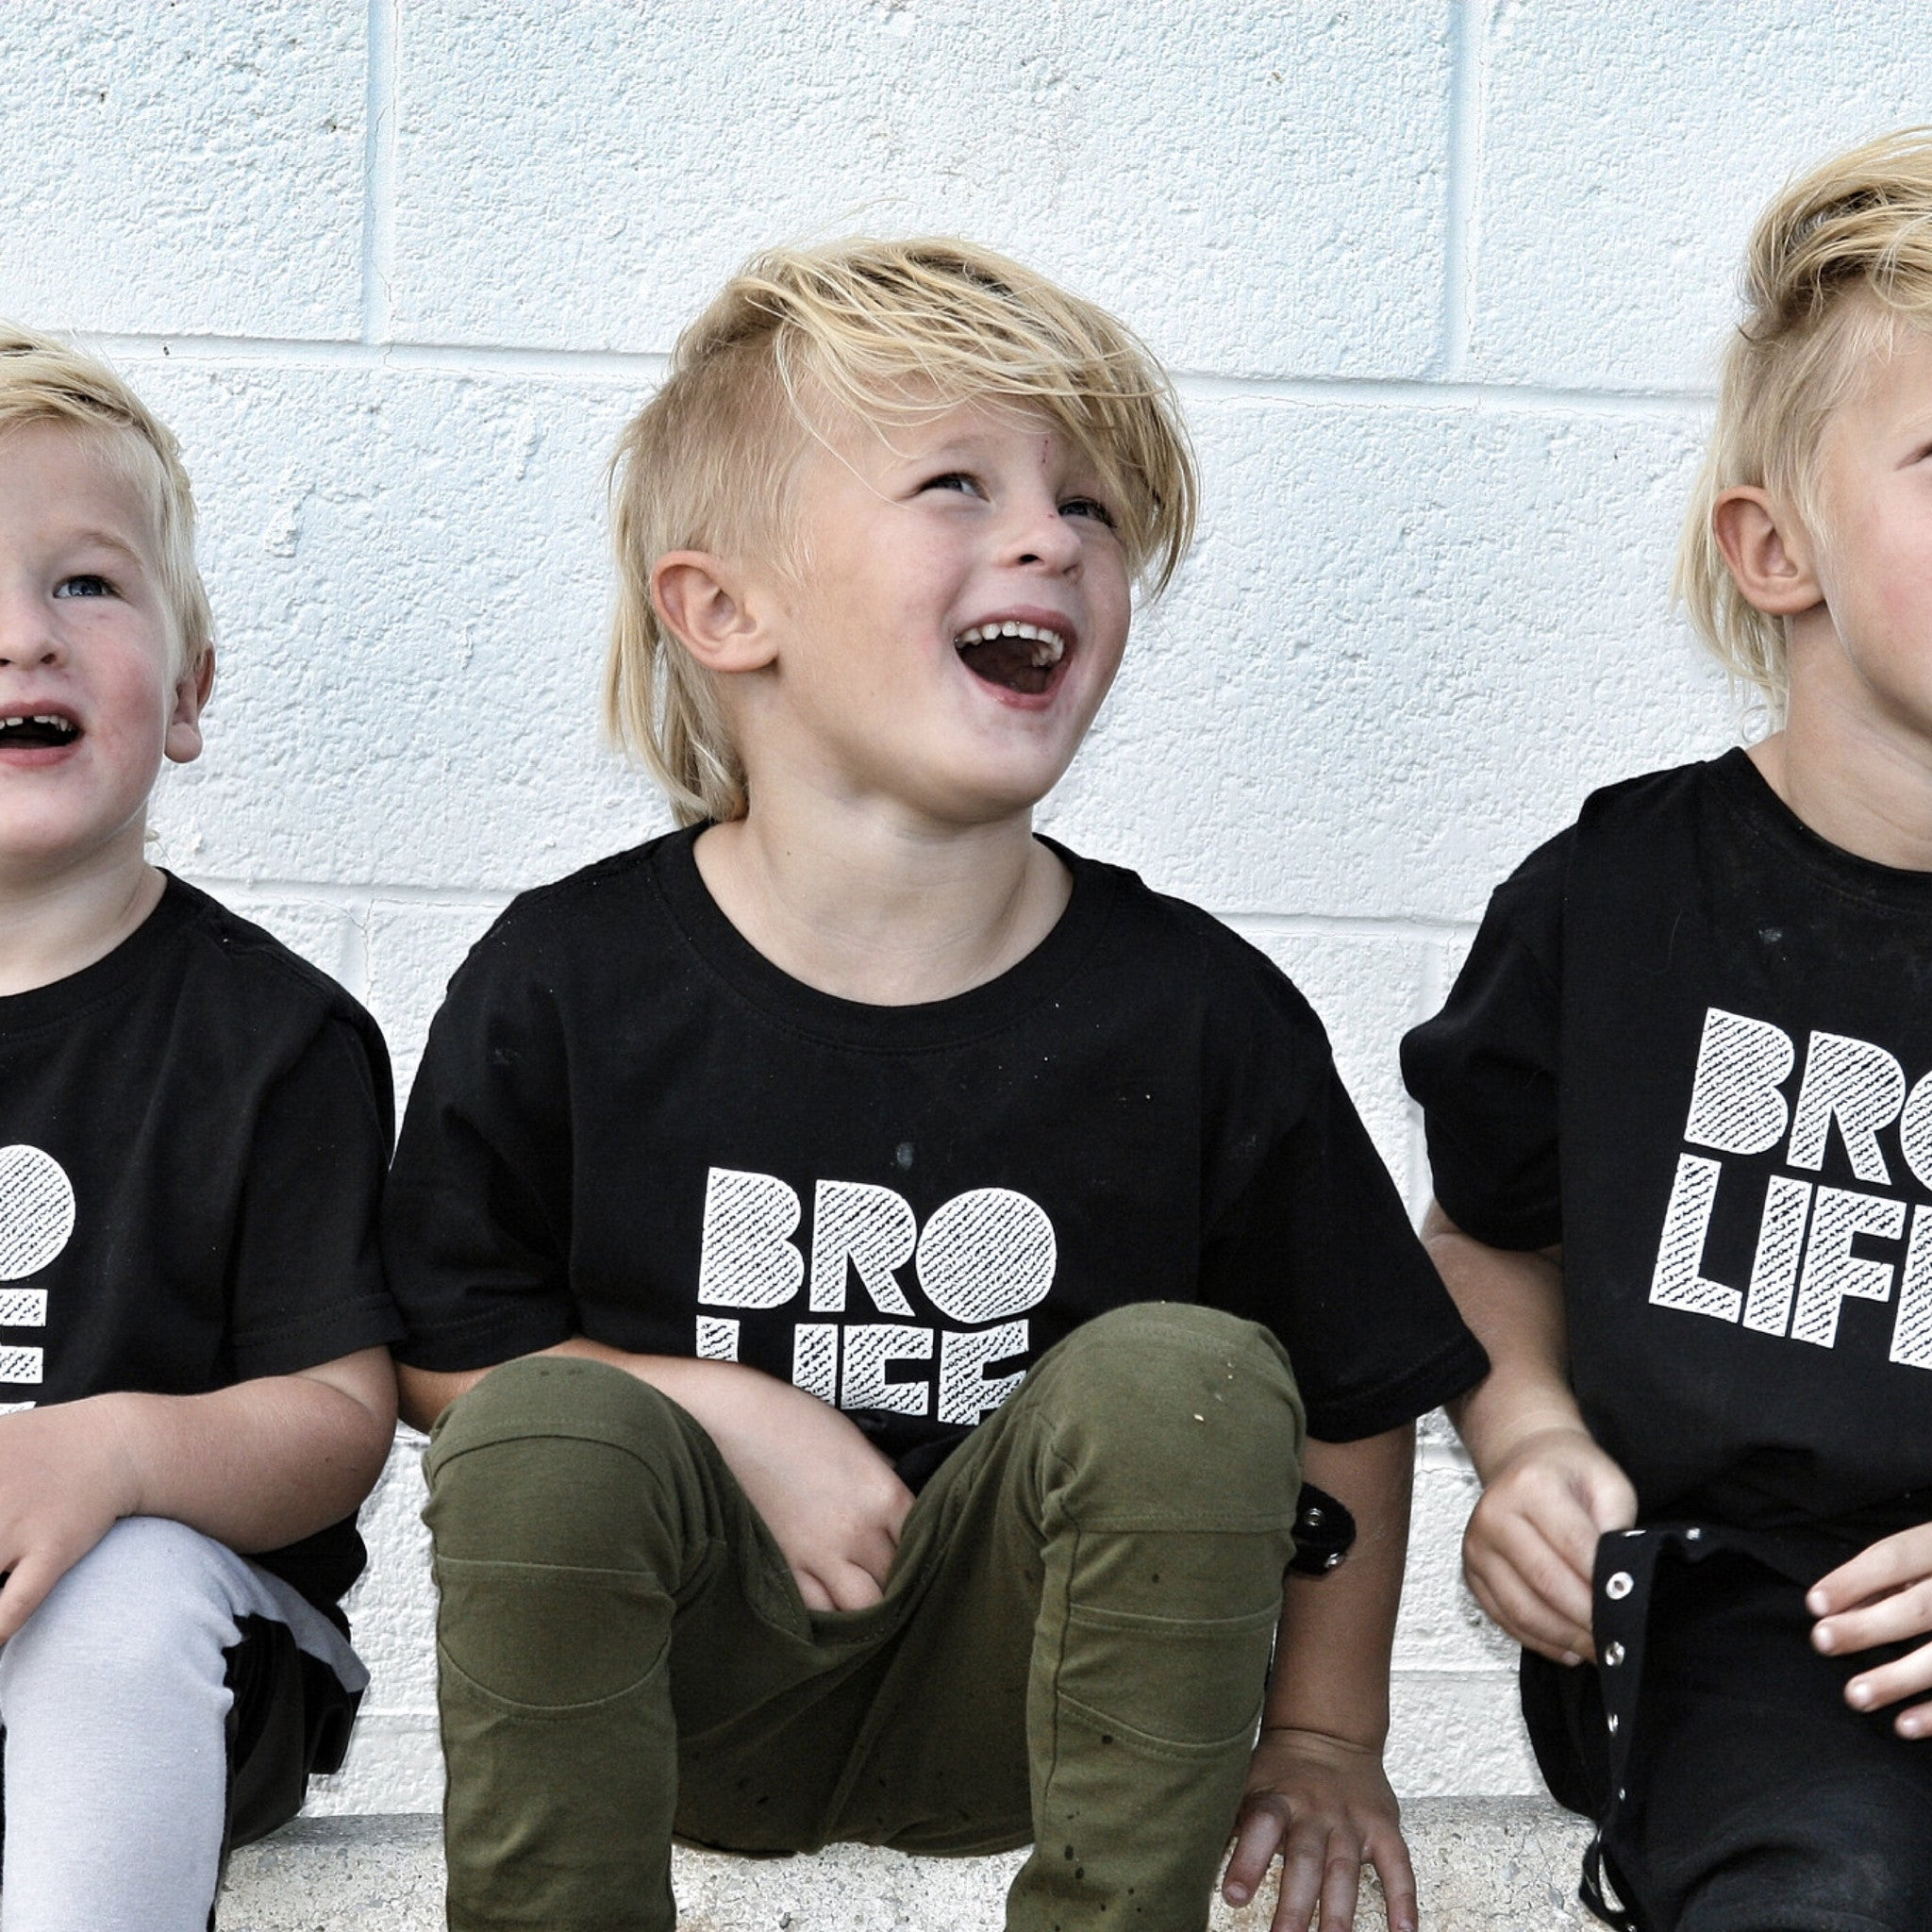 Bro Life [Youth]